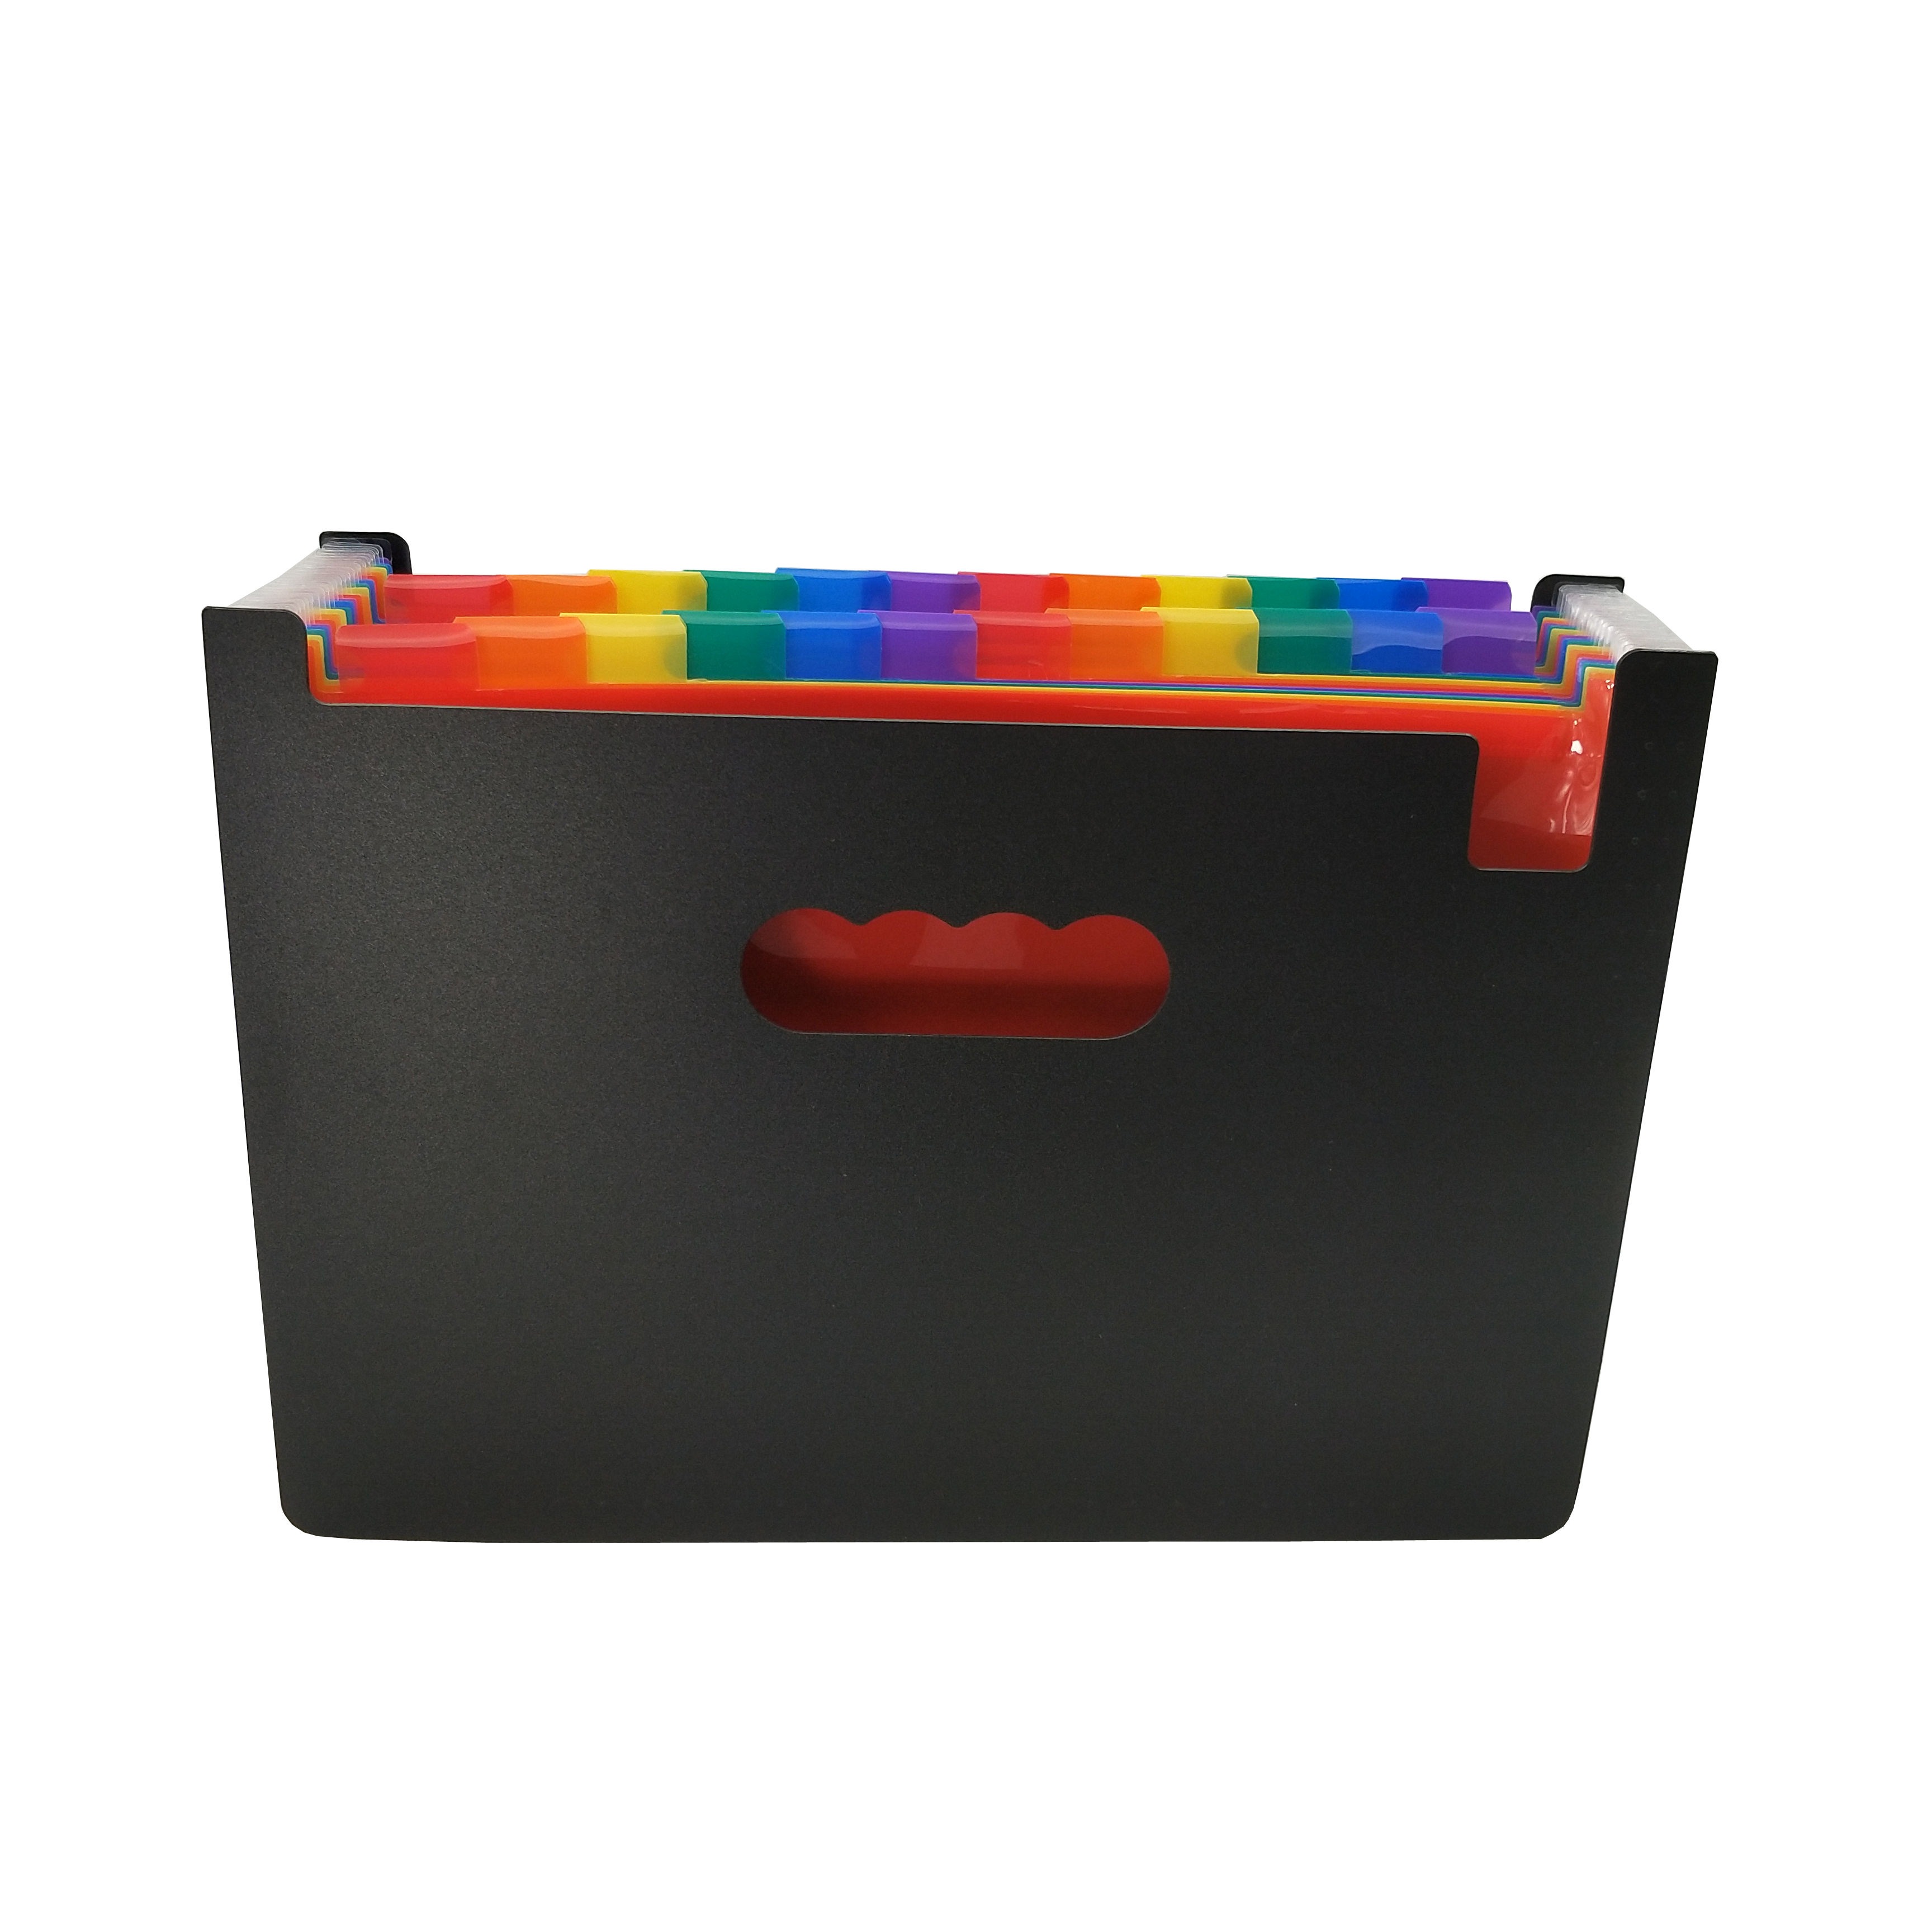 24 Pockets Expanding File Folder Plastic Rainbow Expandable File Organizer Self Standing Accordion A4 Document Folder Wallet